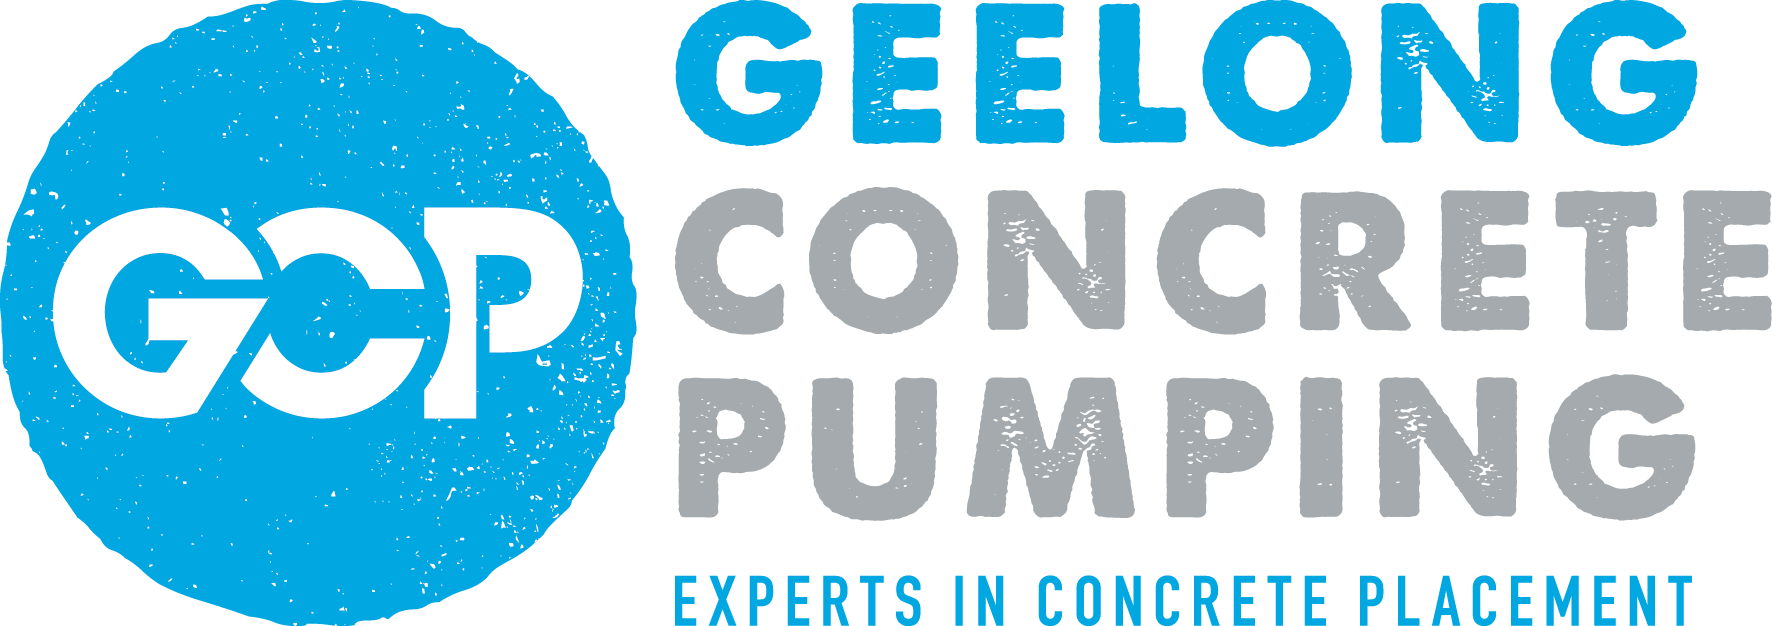 Geelong concrete pumping